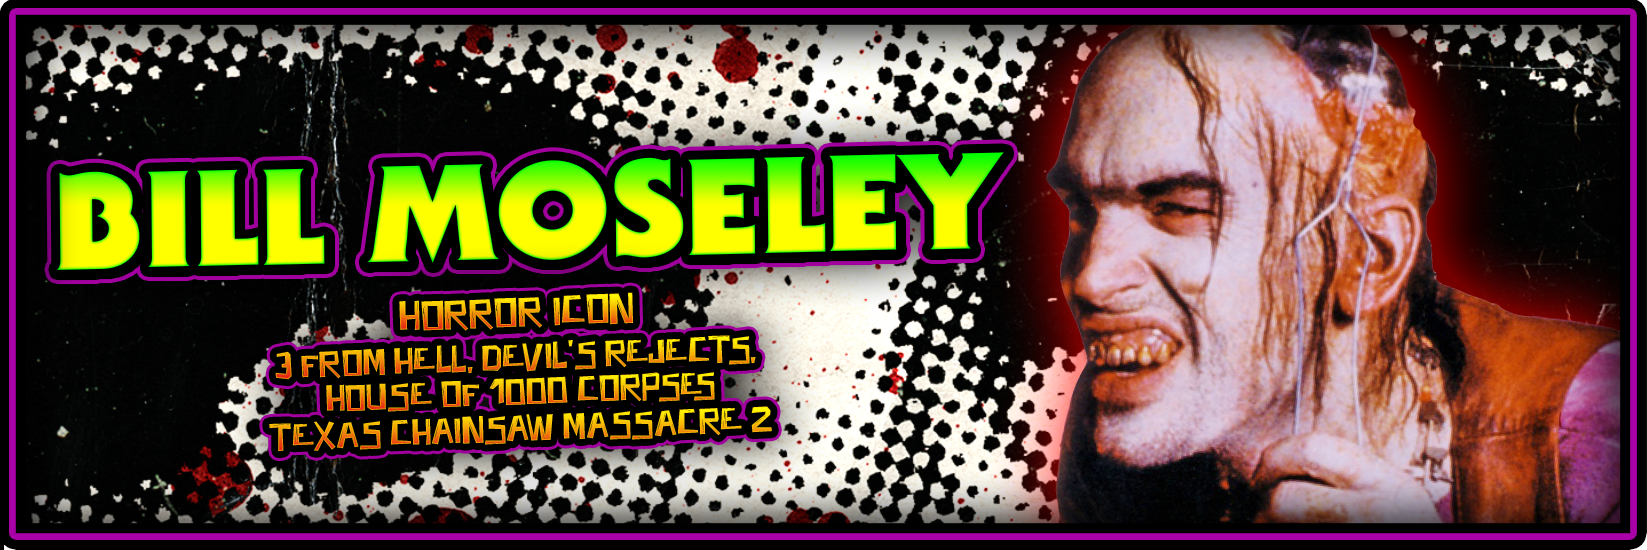 Astronomicon 3 Bill Moseley Banner.png